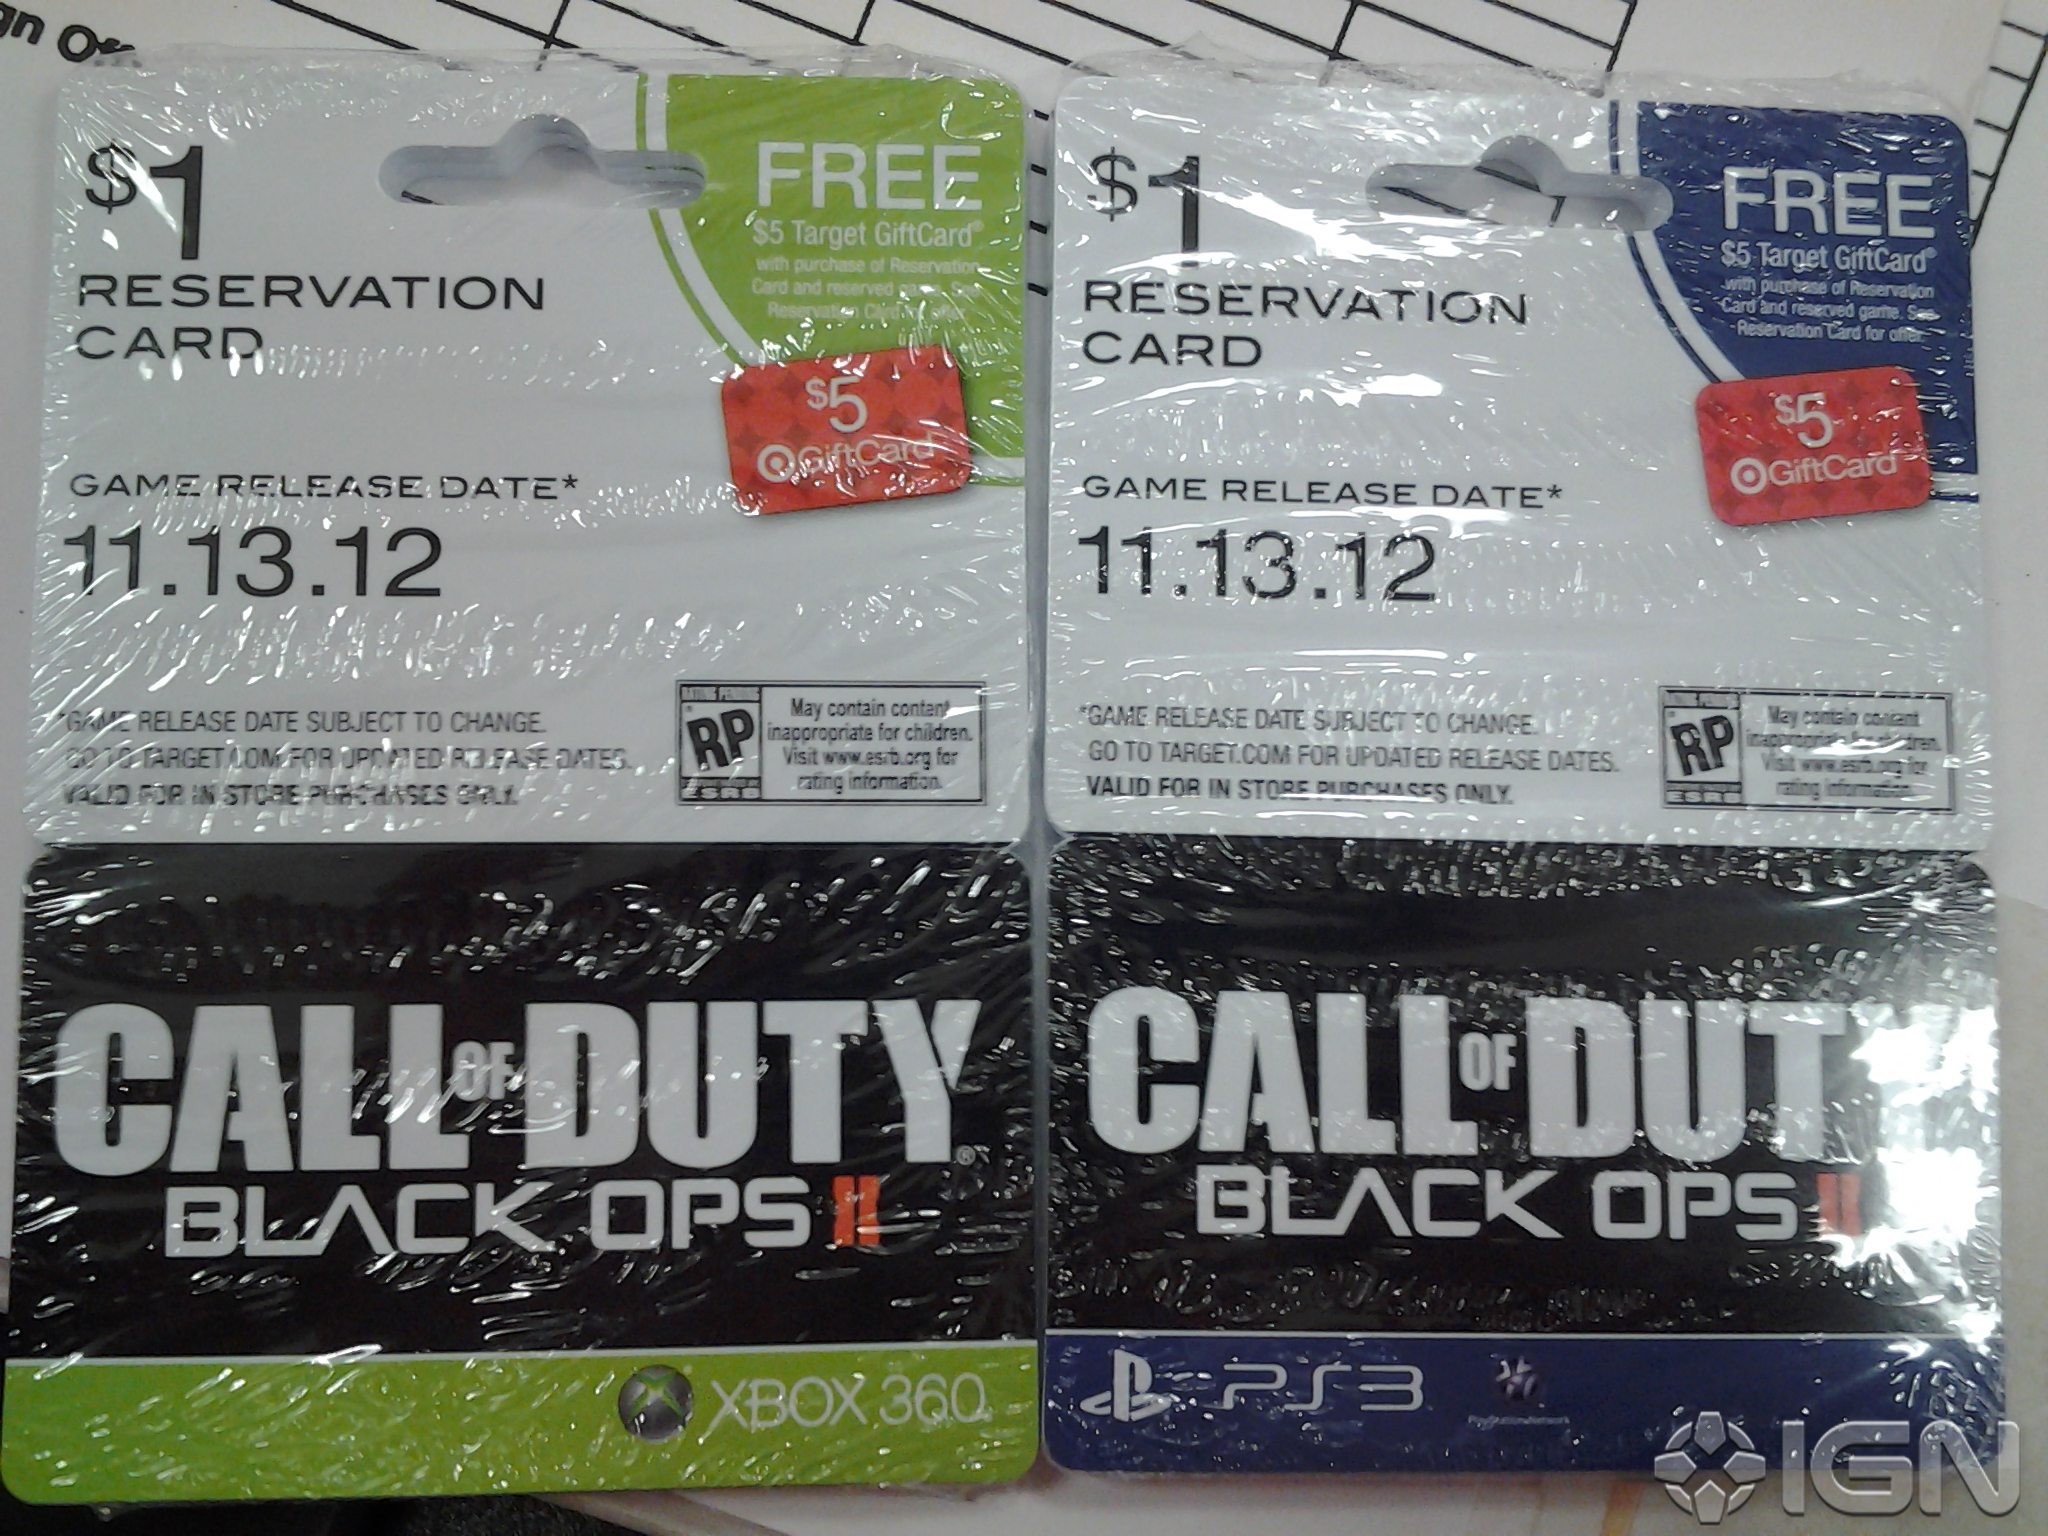 Black Ops 2 reservation card